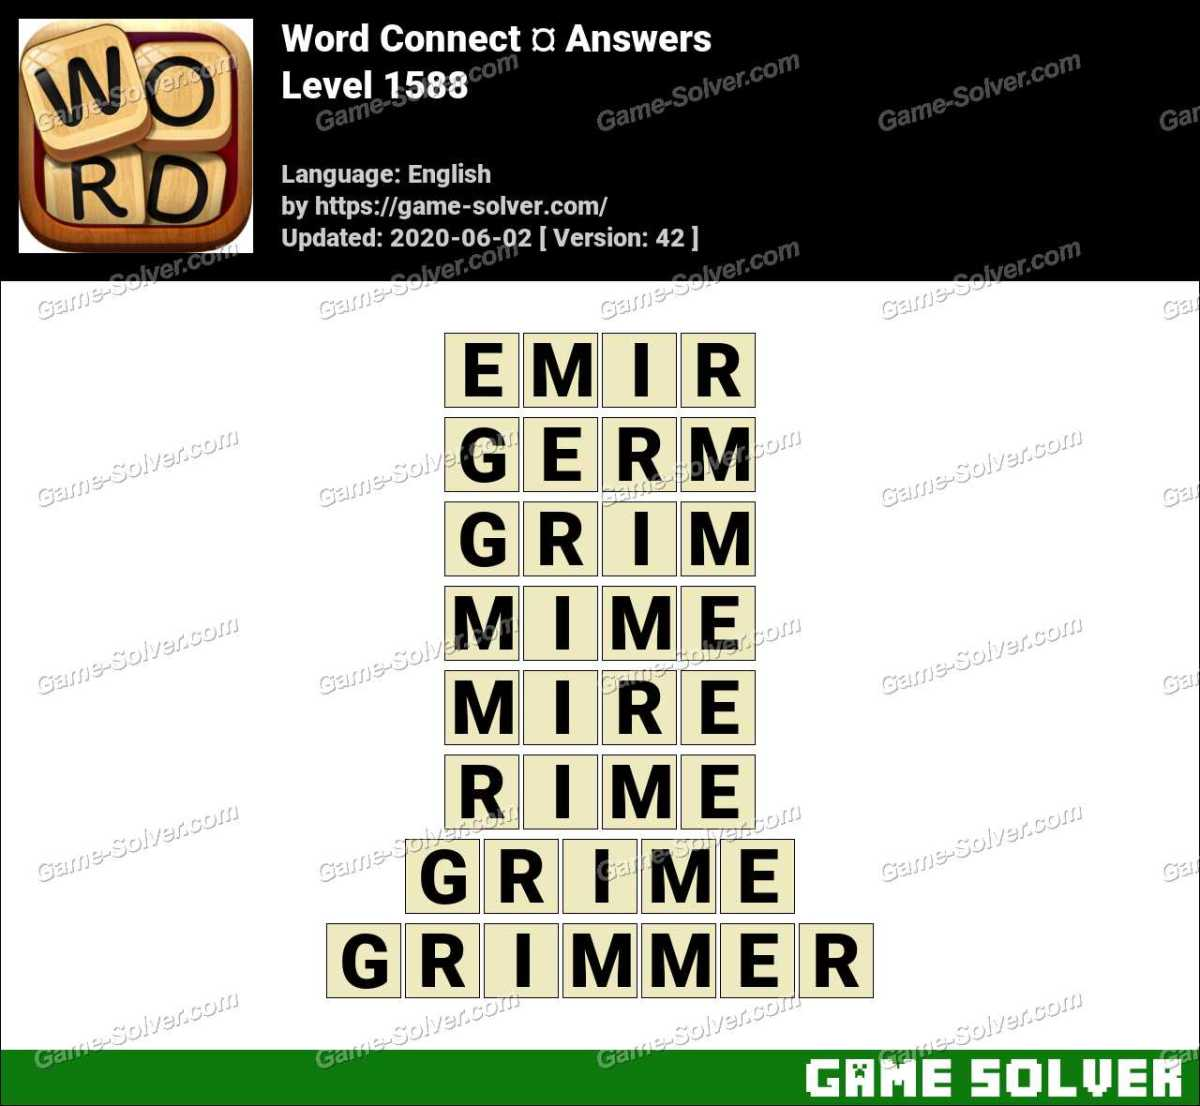 Word Connect Level 1588 Answers